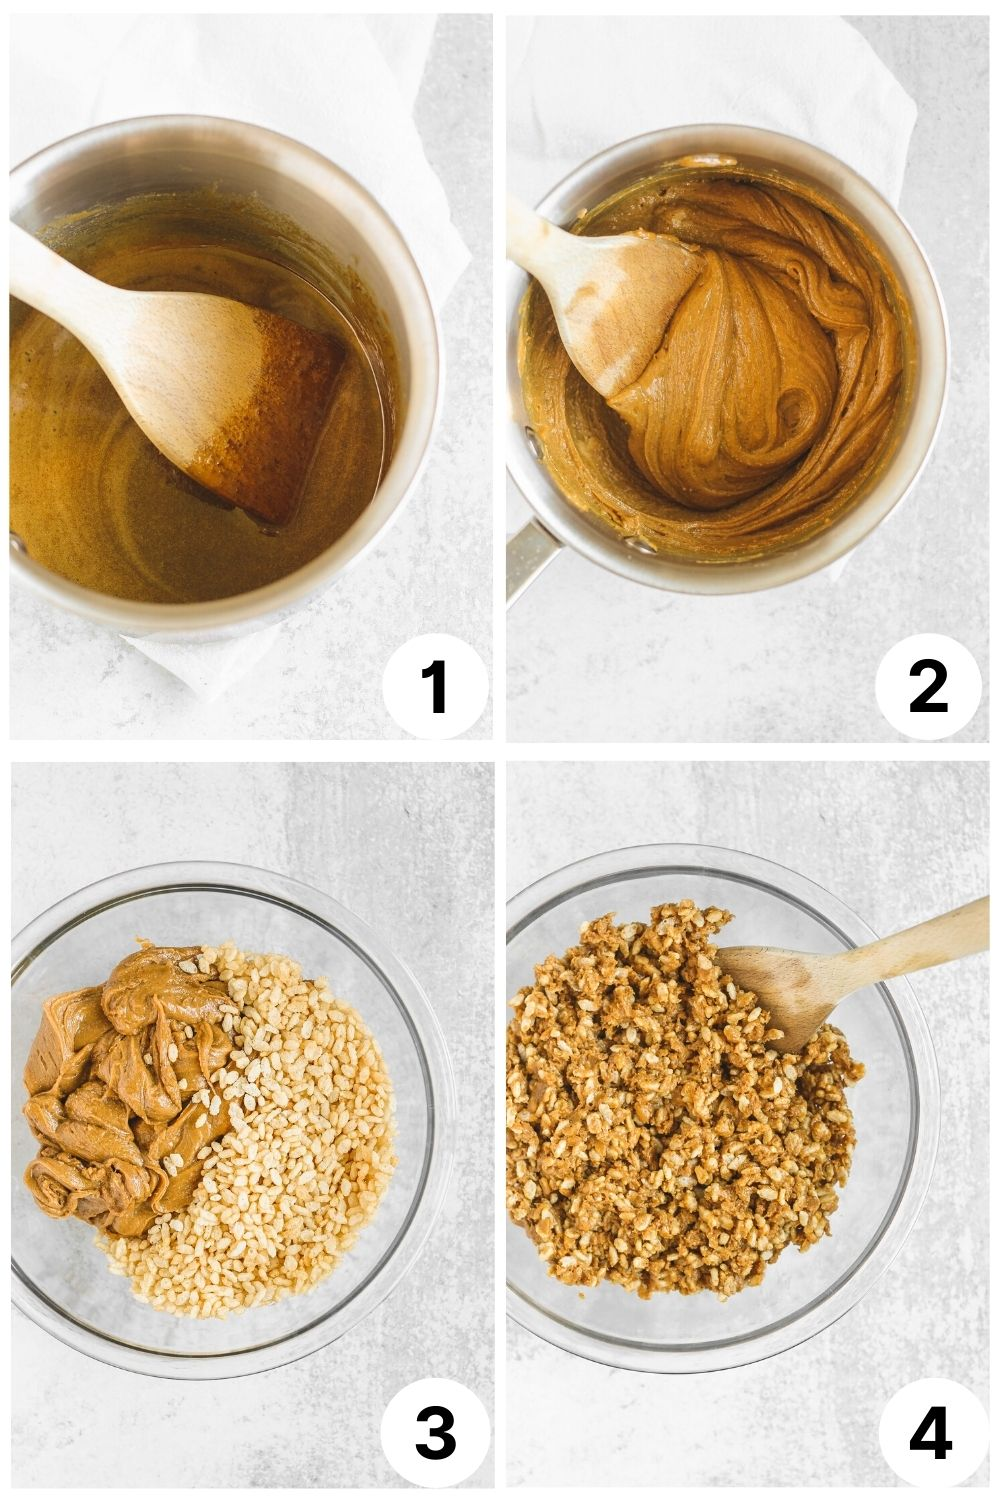 4 quadrants with step by step photos to show the making of the peanut butter krispie bars